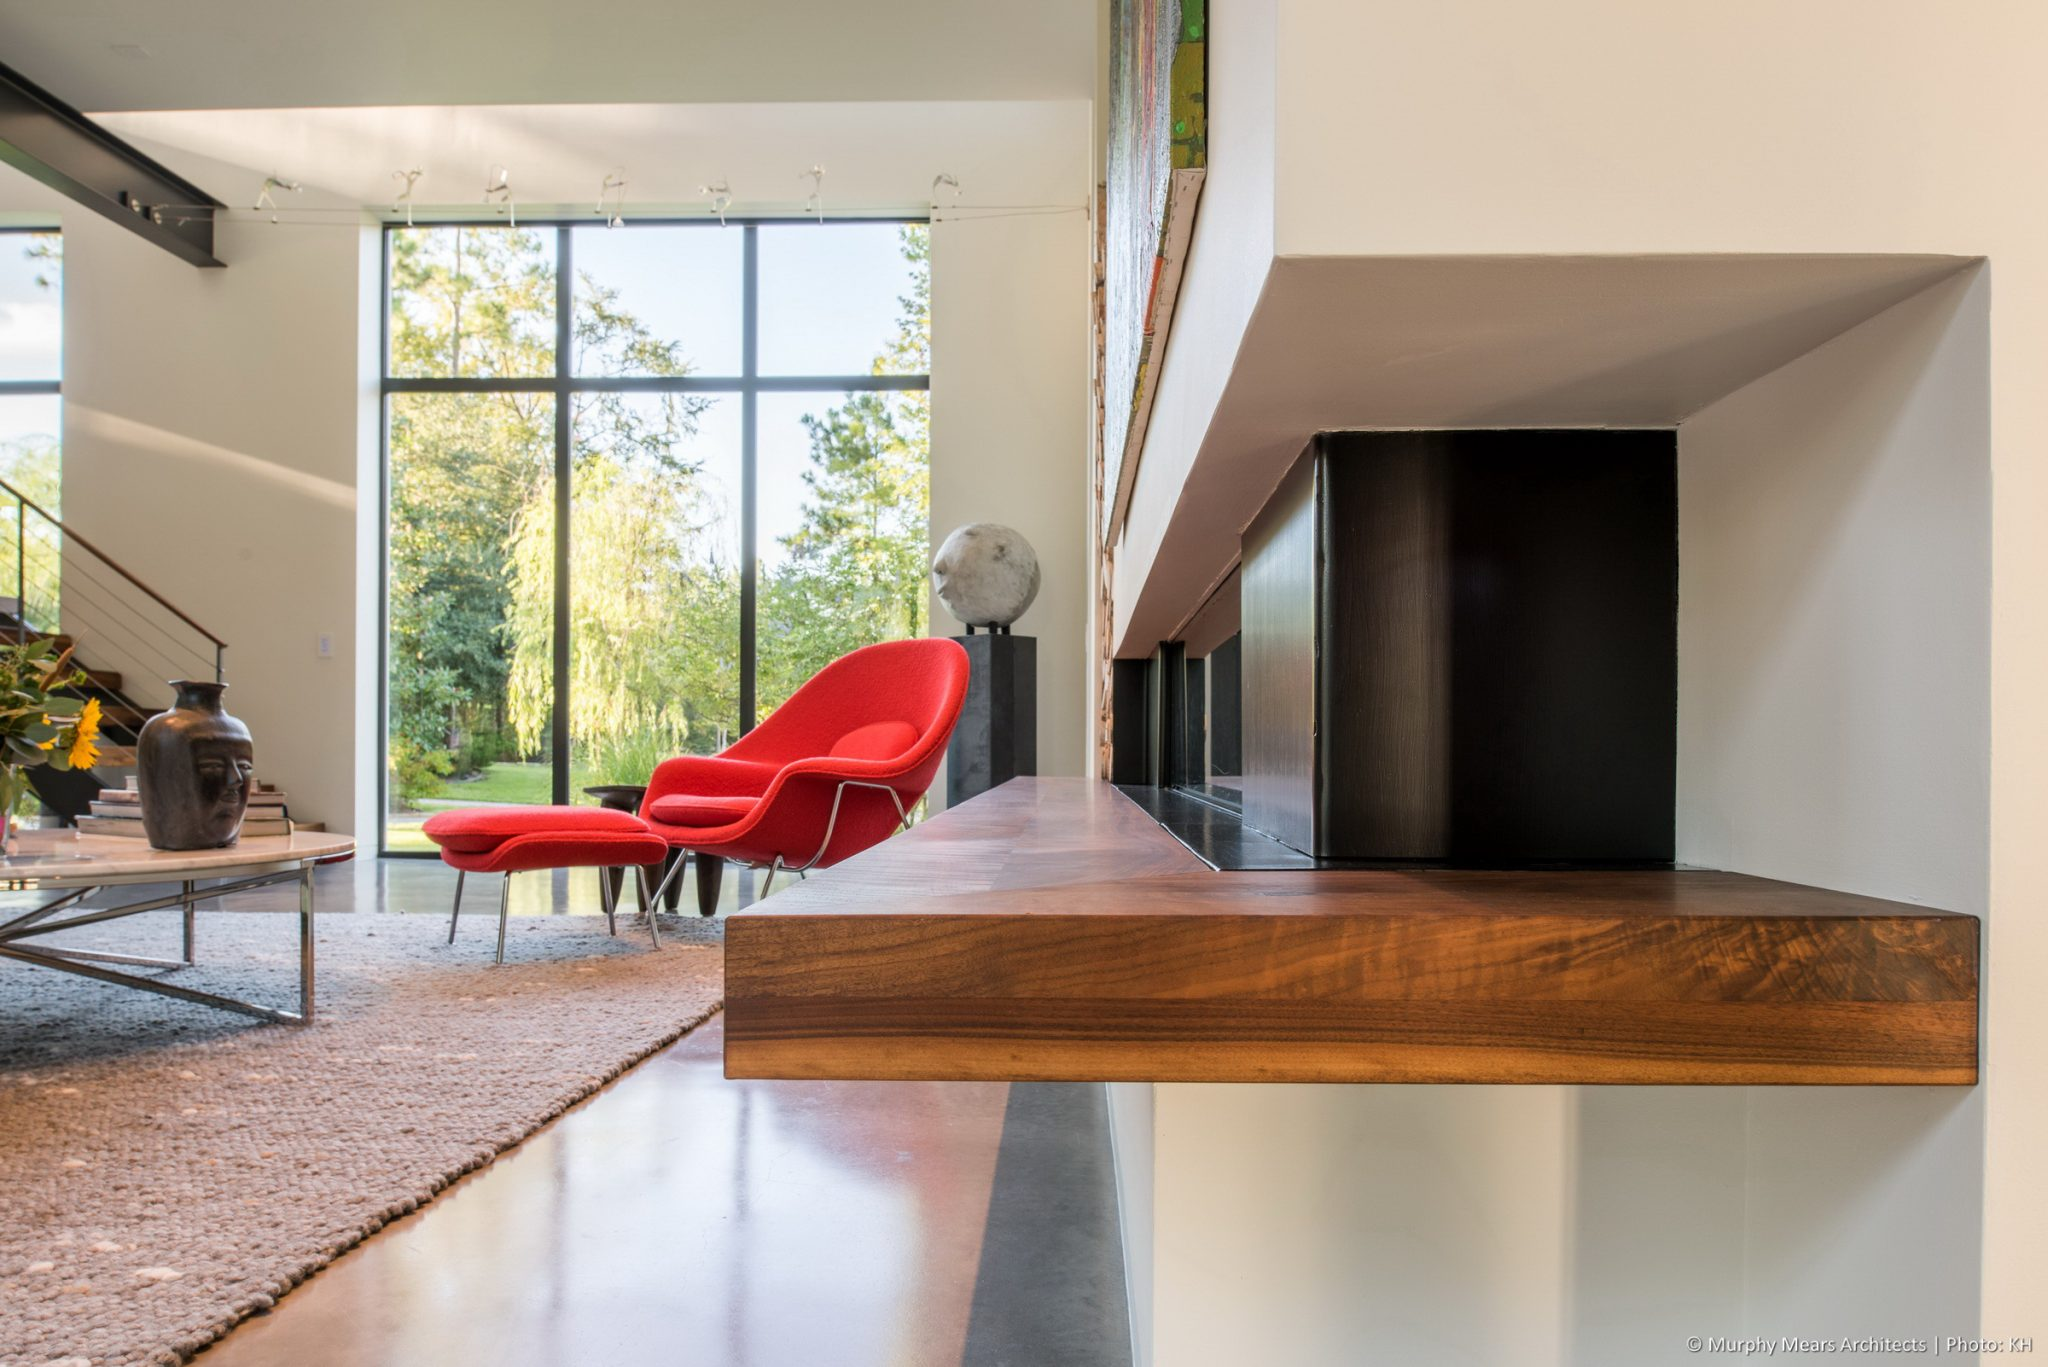 Carlton Woods Residence - Wood and steel fireplace finishes complement the wood and steel stair beyond. A floor to ceiling window on the front aligns with an identical window on the opposite side of the room.